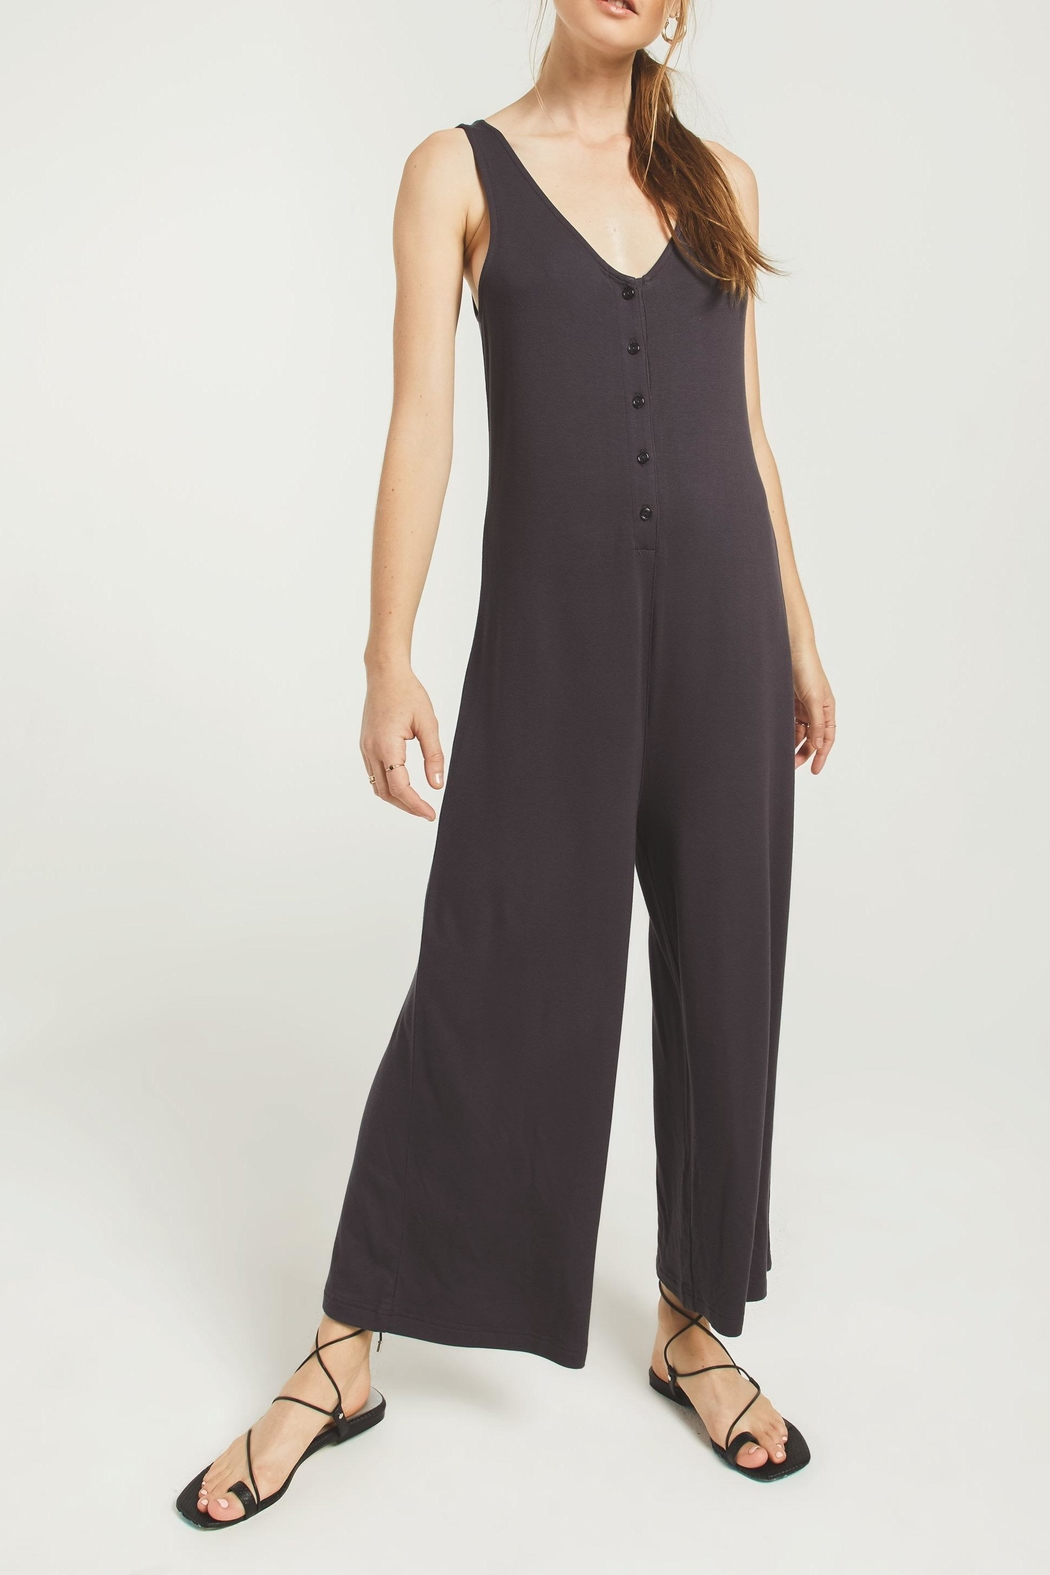 z supply Mojave Jumpsuit - Main Image